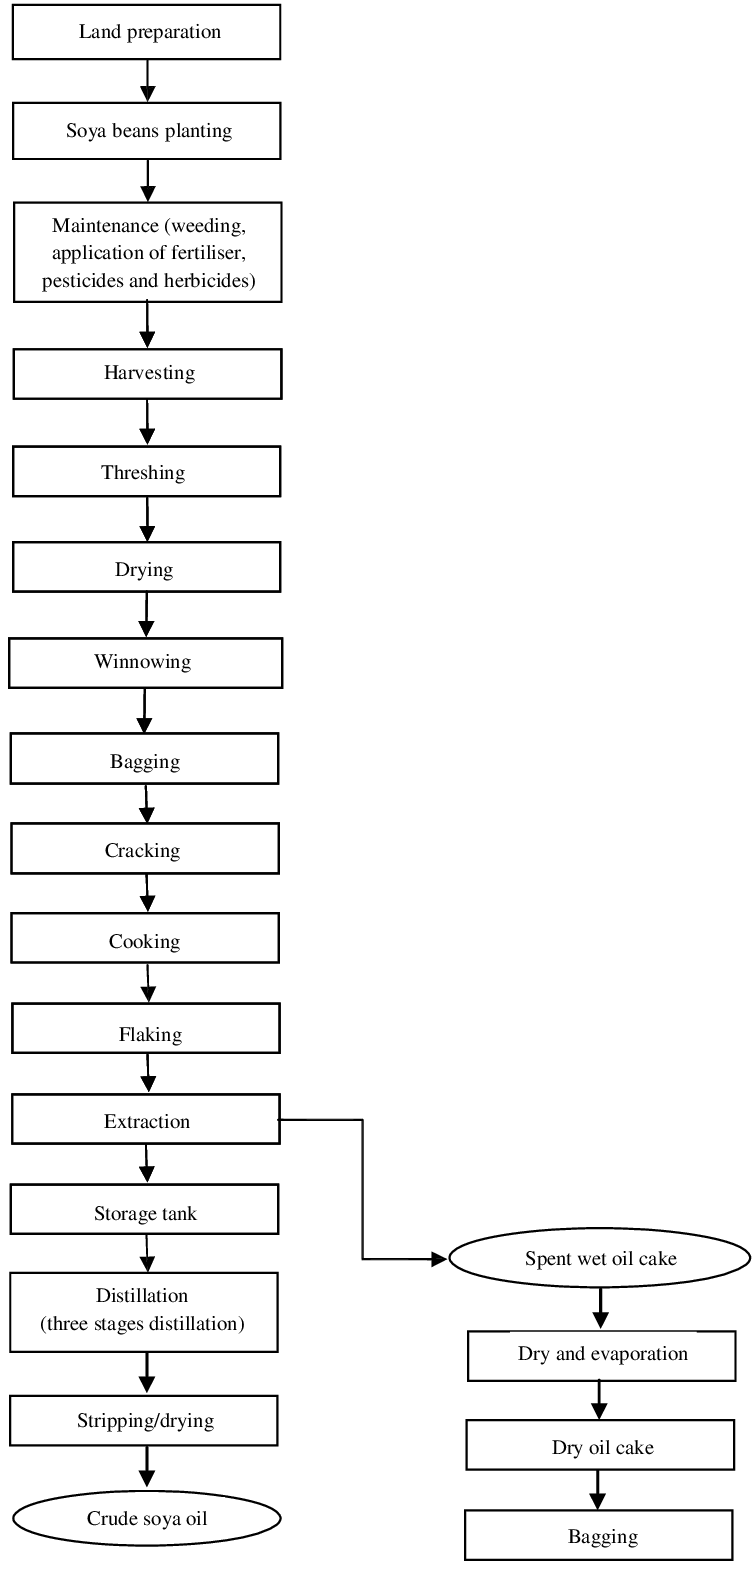 medium resolution of flow chart of soya beans production and processing system downloadflow chart of soya beans production and